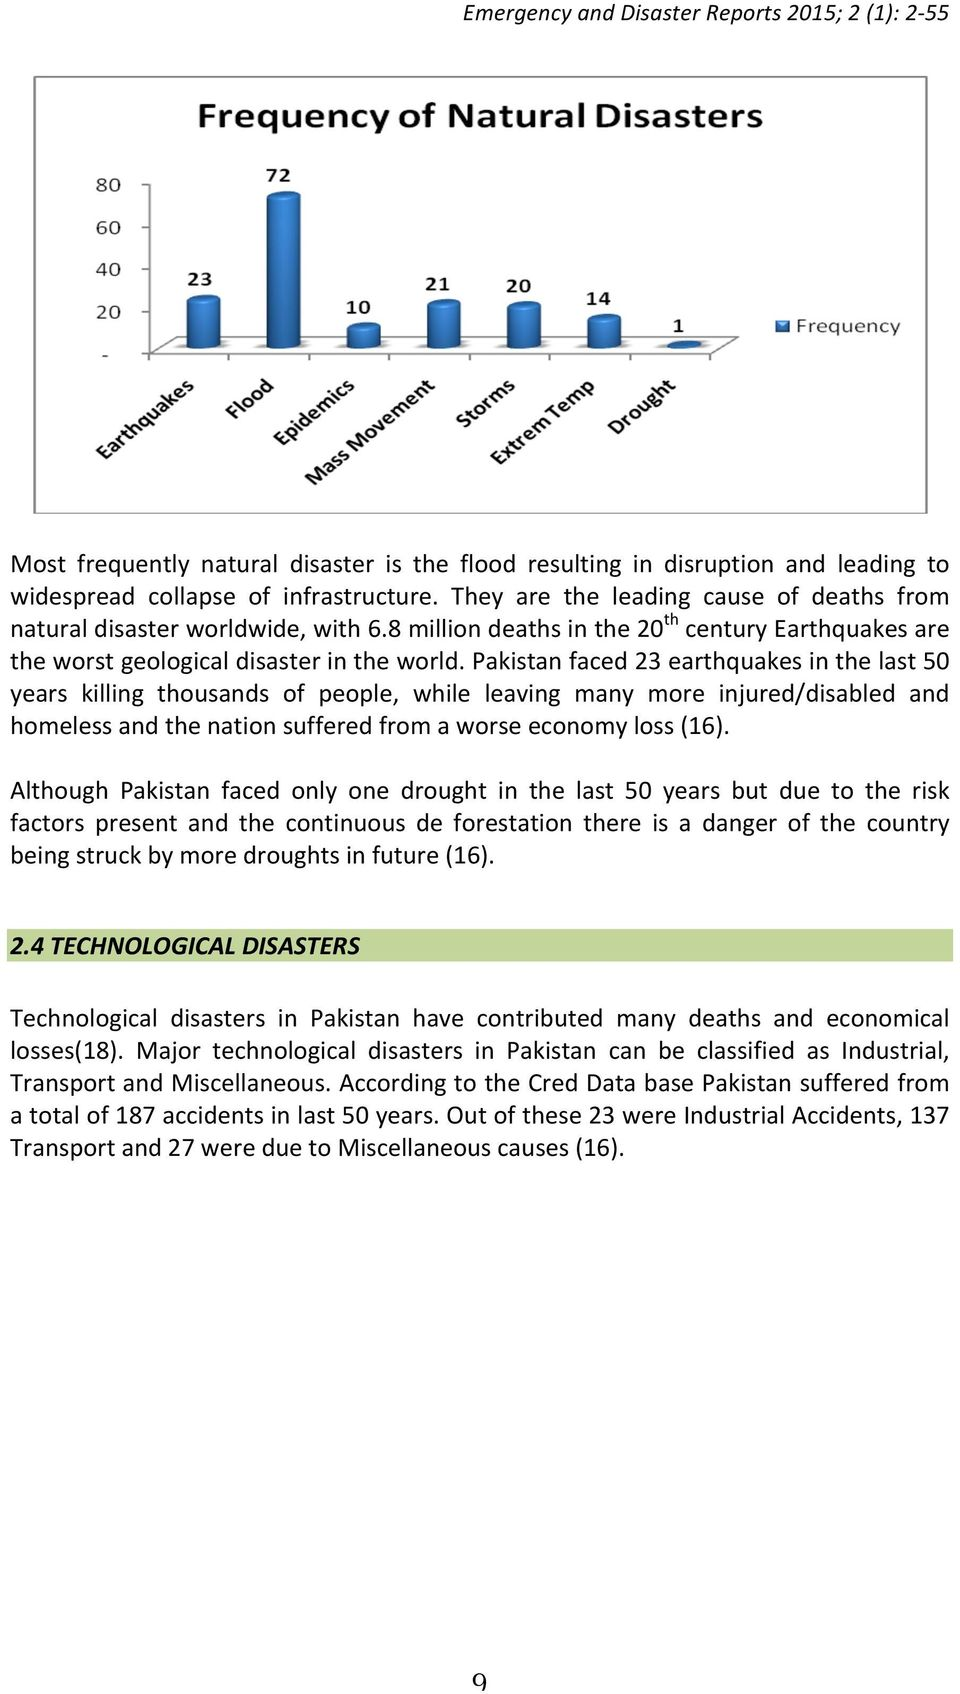 Pakistan faced 23 earthquakes in the last 50 years killing thousands of people, while leaving many more injured/disabled and homeless and the nation suffered from a worse economy loss (16).